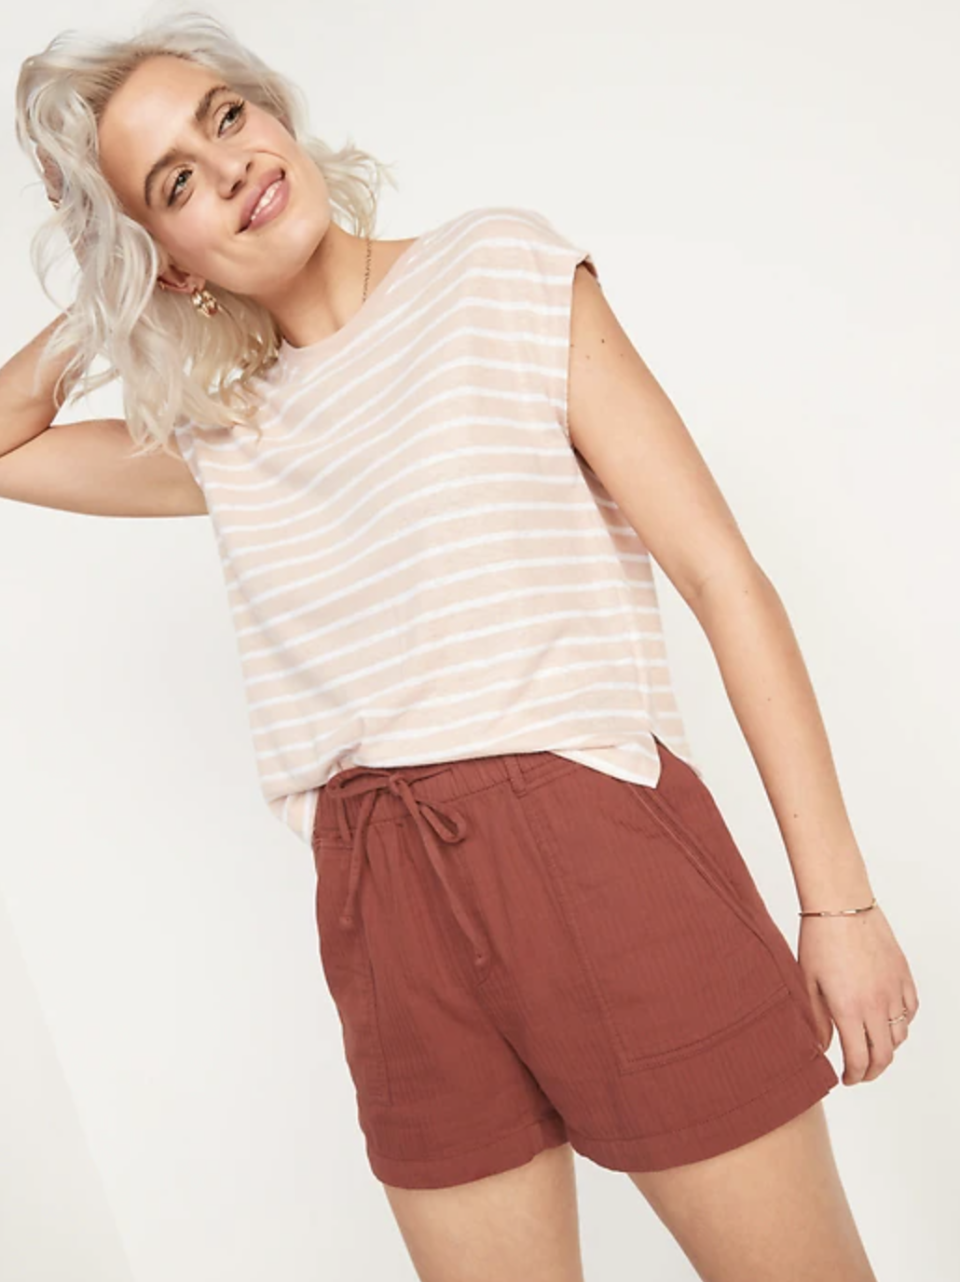 High-Waisted Textured Twill Shorts in Copper Moon (Photo via Old Navy)